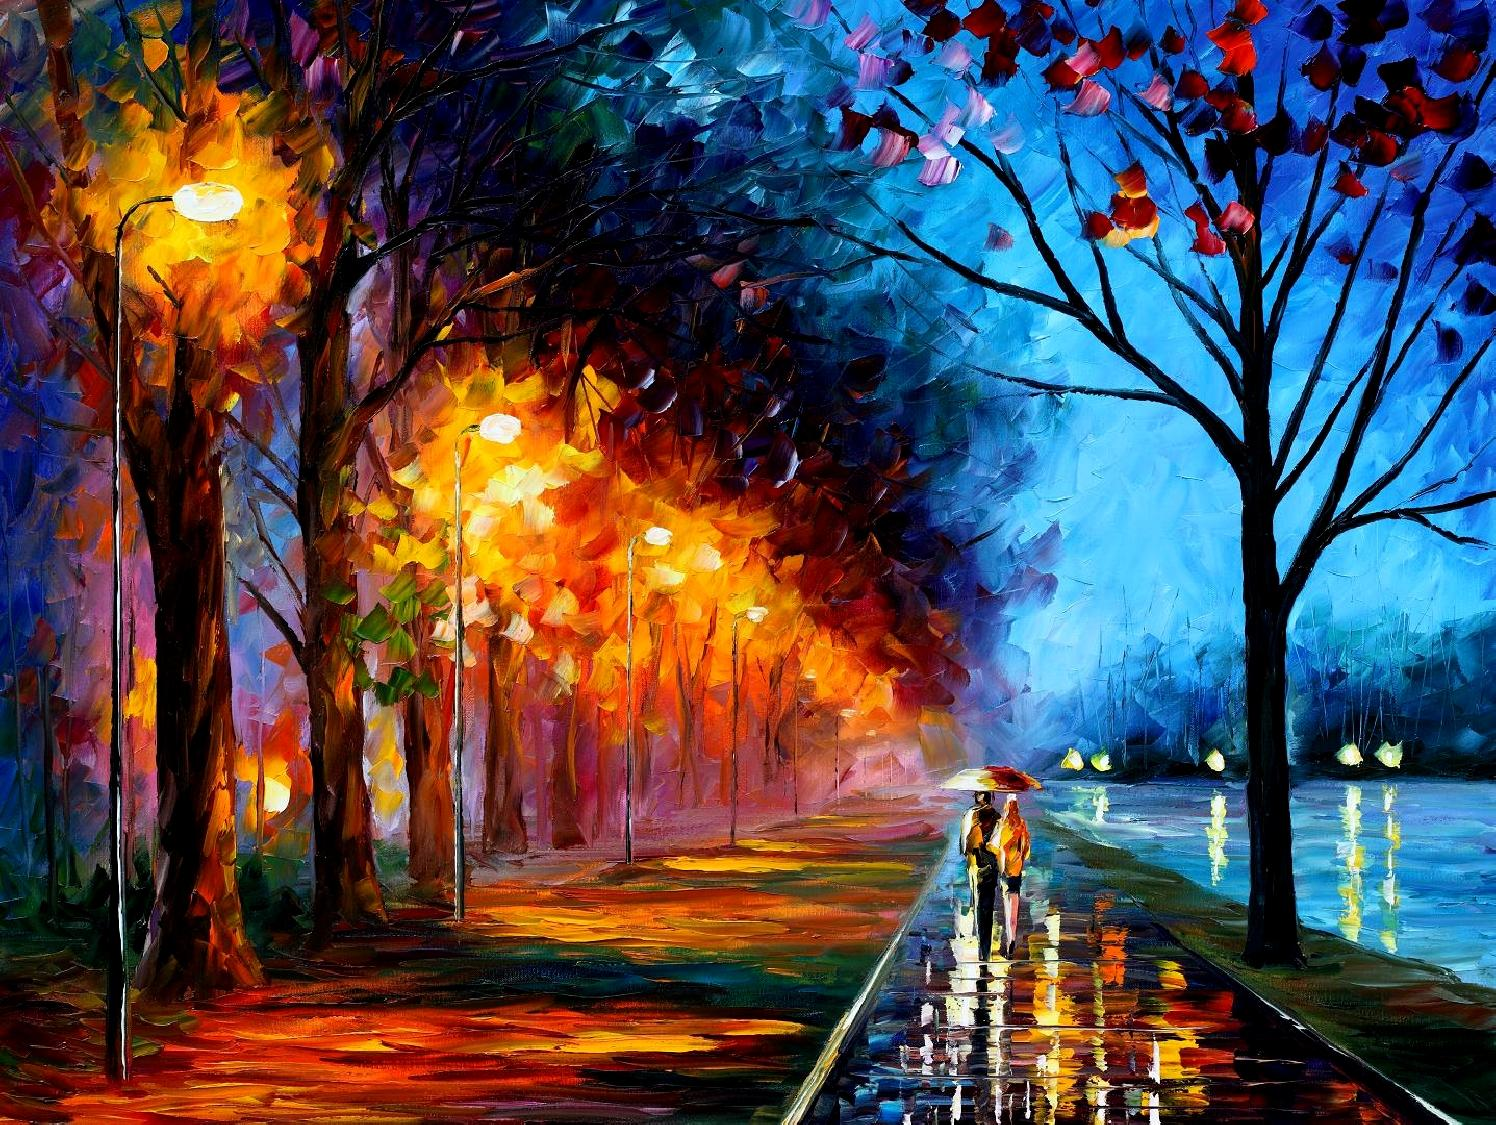 "ALLEY BY THE LAKE 2 — PALETTE KNIFE Oil Painting On Canvas By Leonid Afremov - Size 72x48"" (180cm x 120cm)"